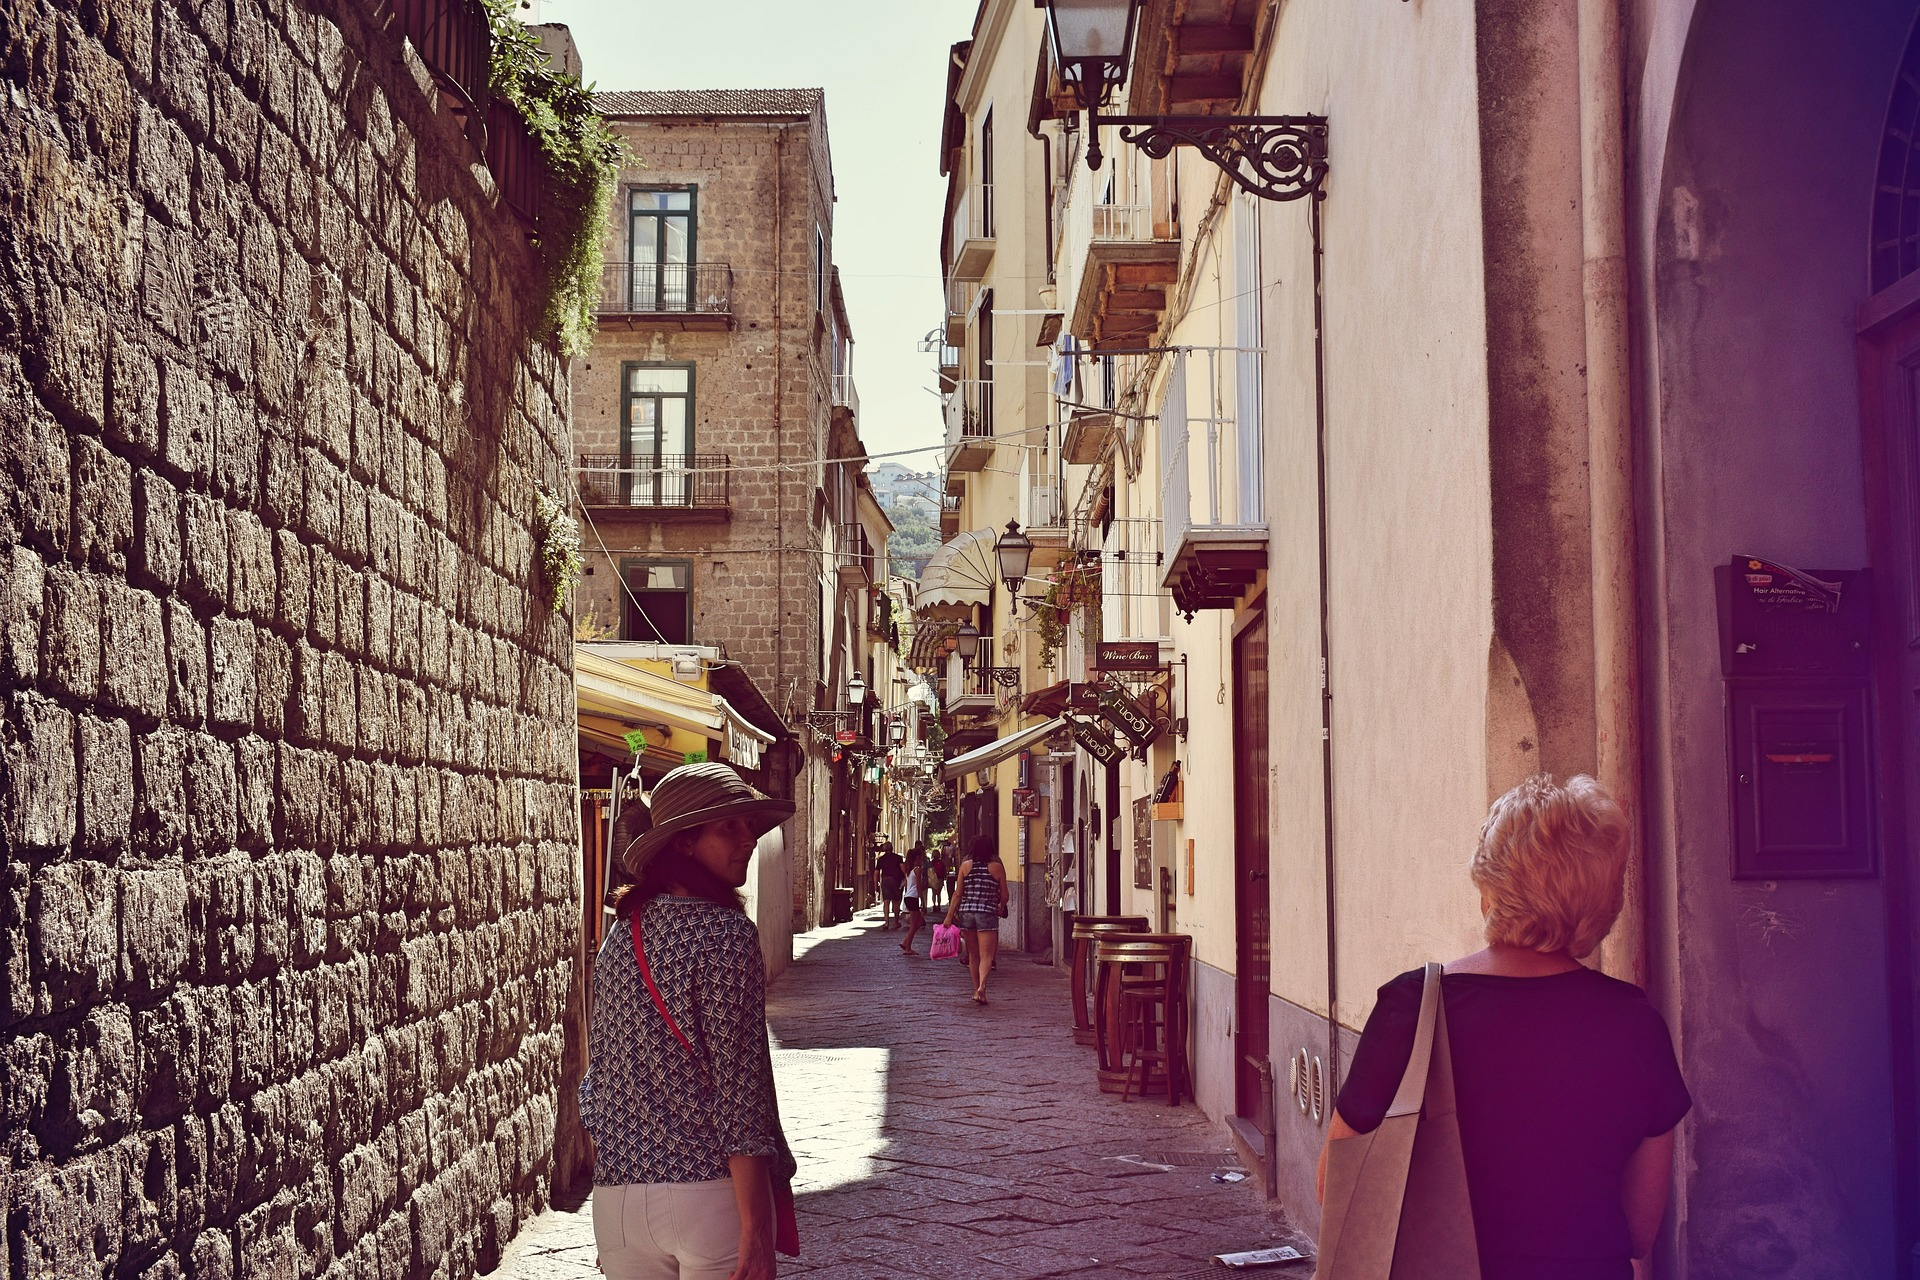 Image of a laneway in old town Sorrento Italy with two women walking down the street